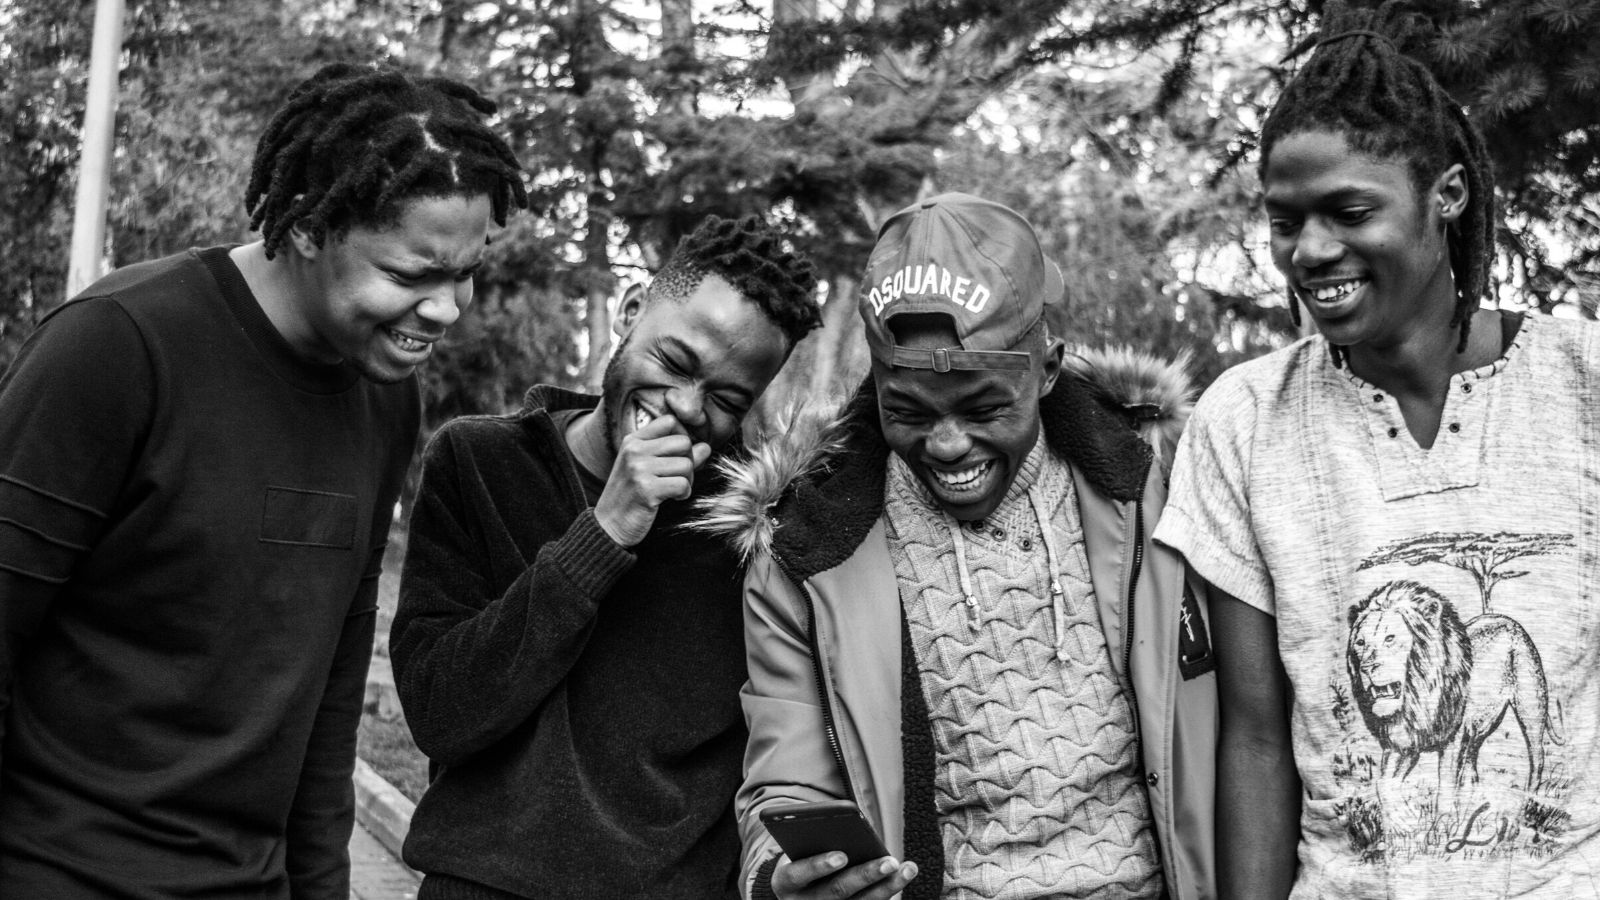 A group of African-American men sharing laughter.